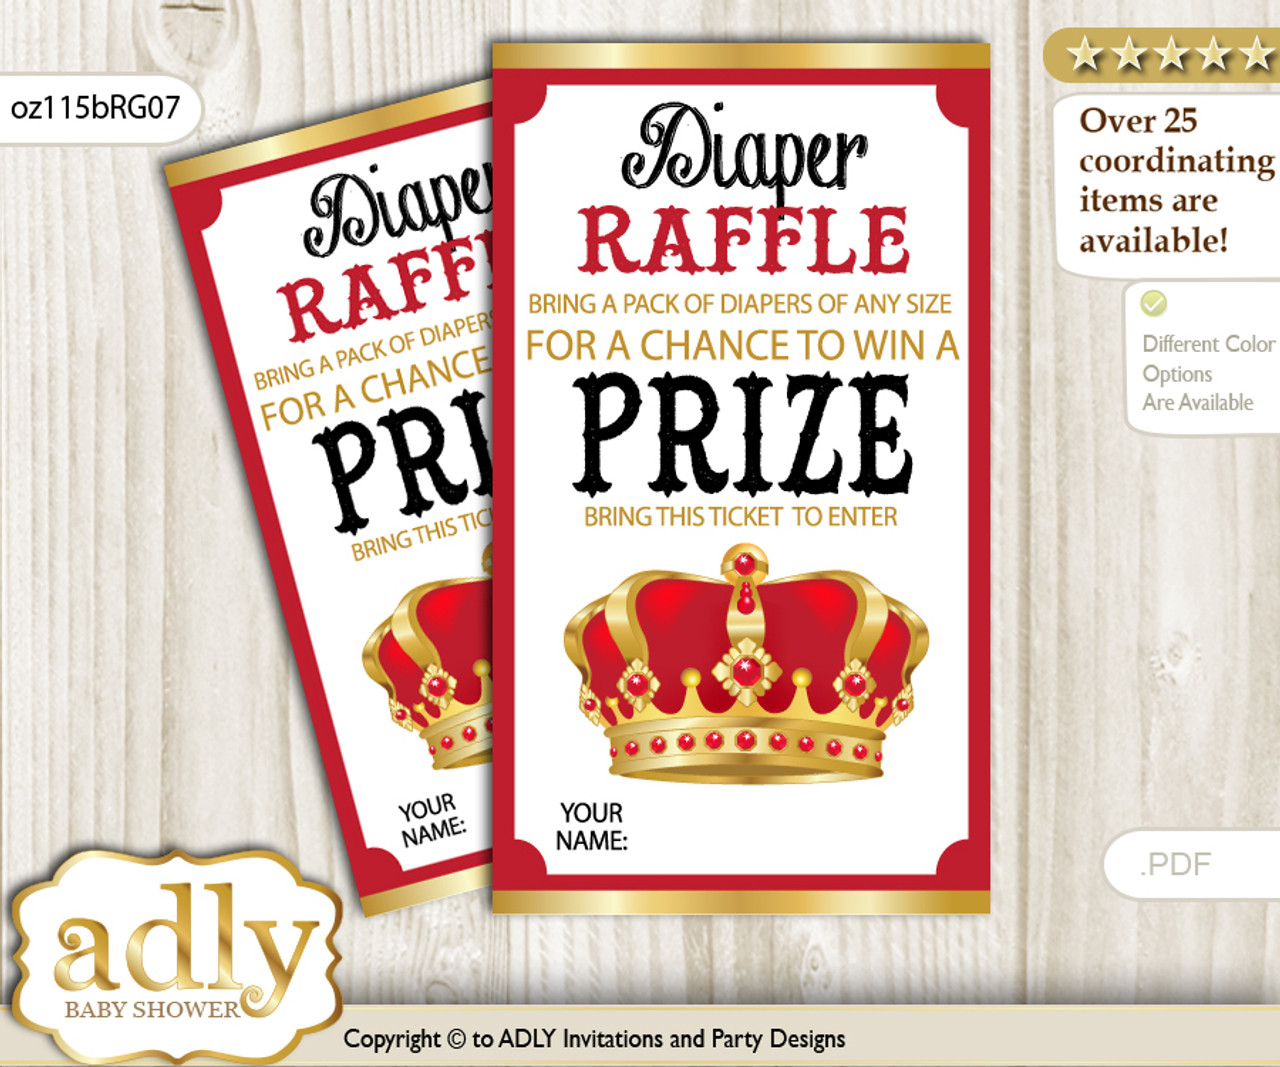 image about Tickets Printable named Royal King Diaper Raffle Printable Tickets for Youngster Shower, Purple Gold, Crown